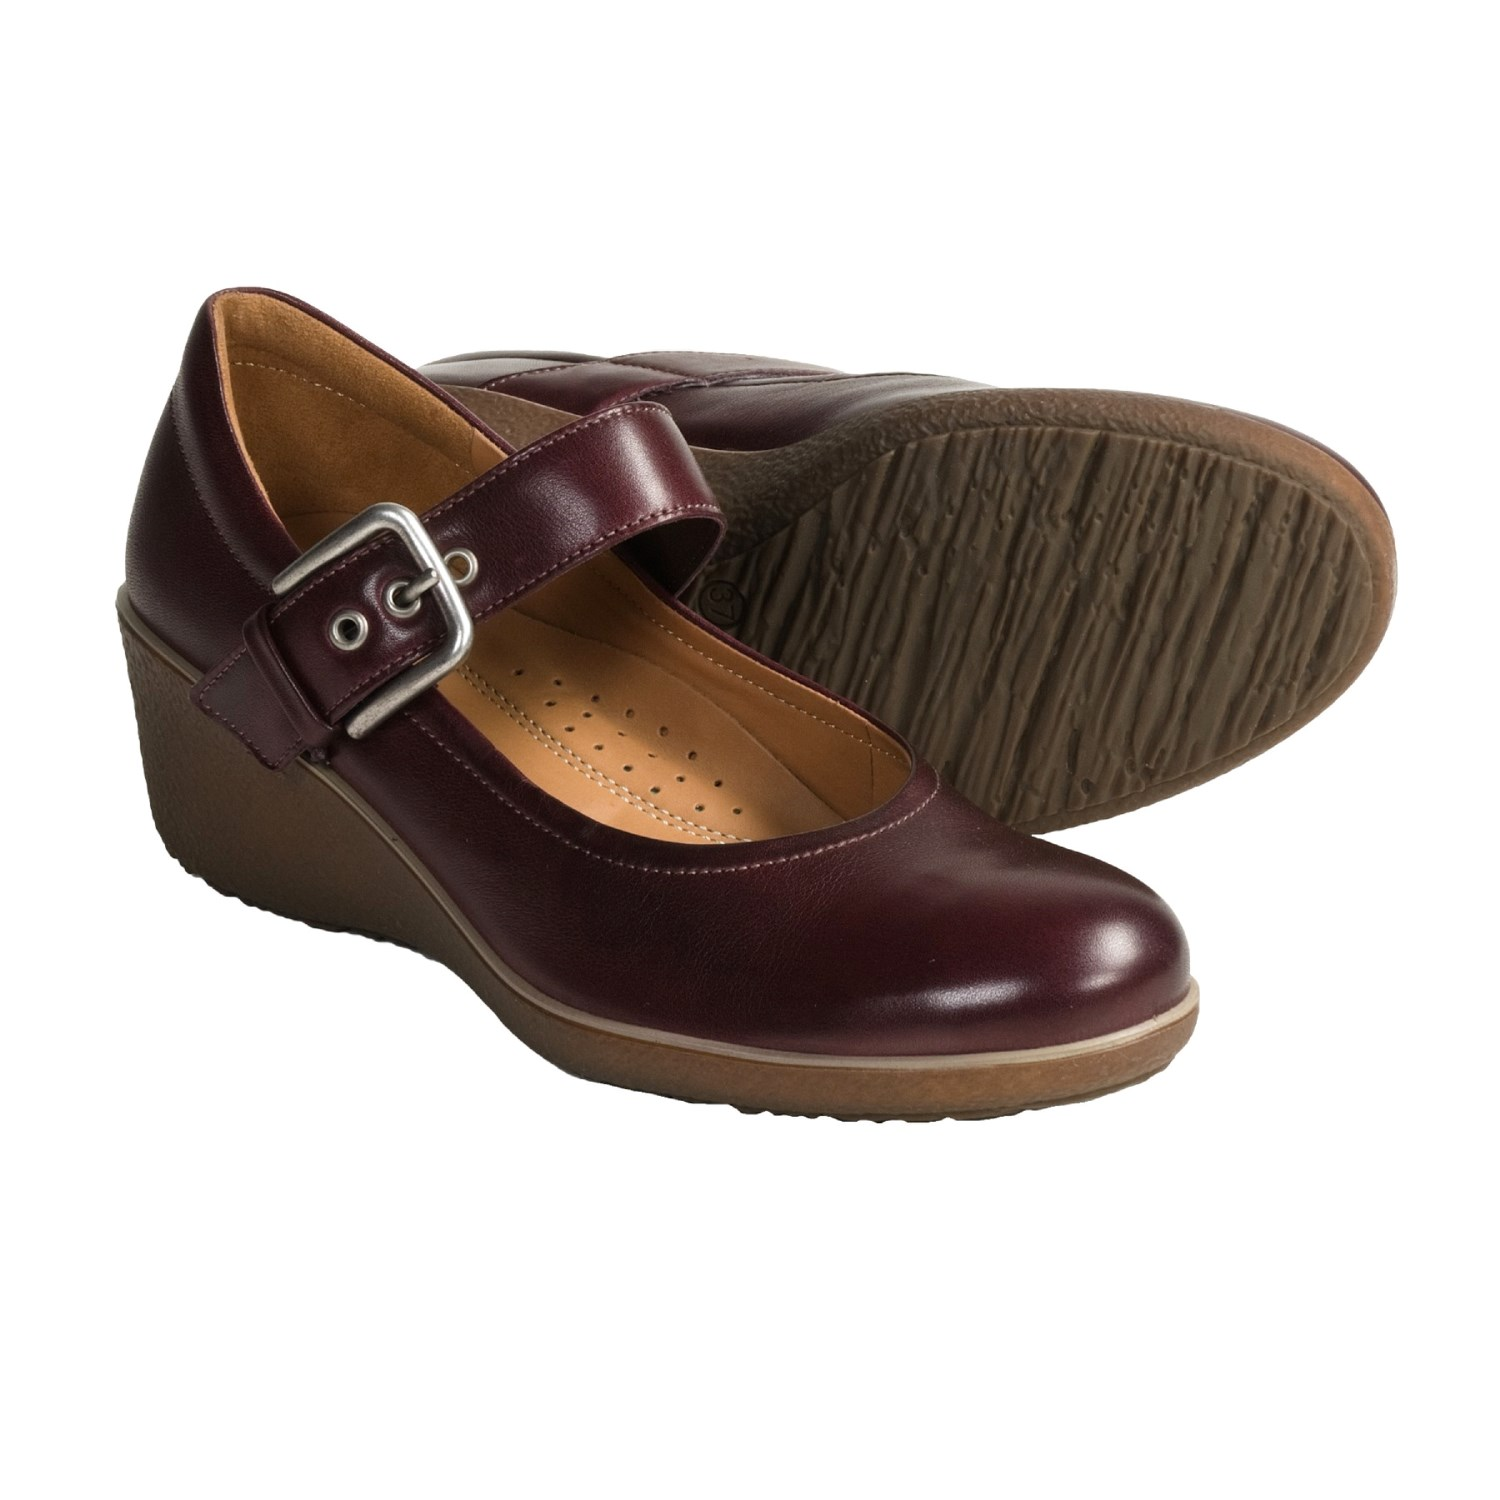 Submit Your Own Image · ECCO Shiver Leather Wedge Shoes